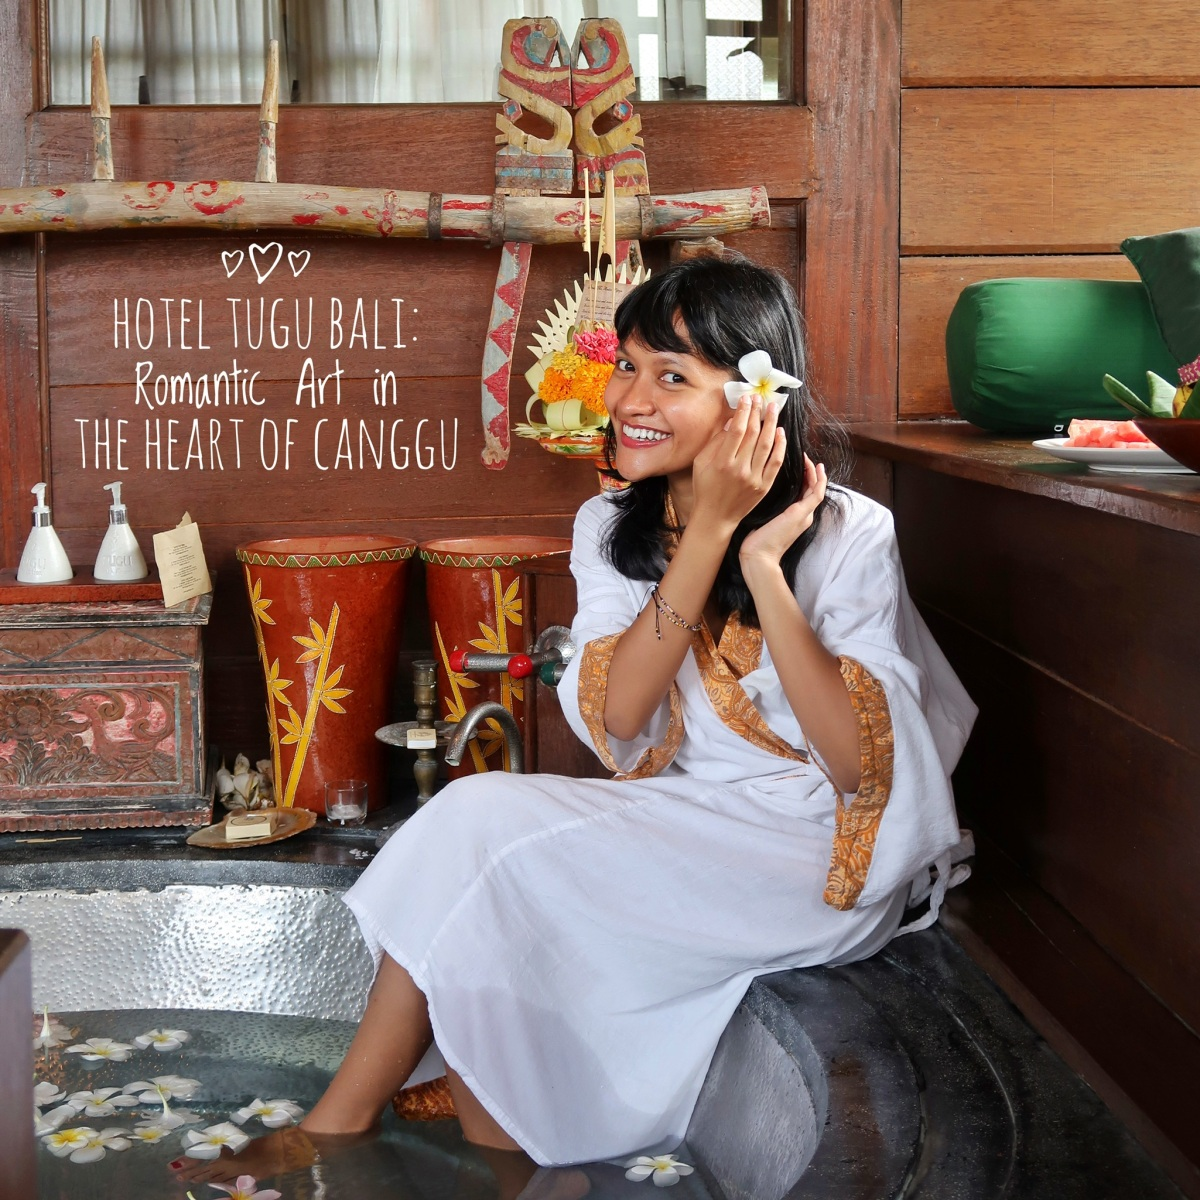 Hotel Tugu Bali: Romantic Art in The Heart of Canggu